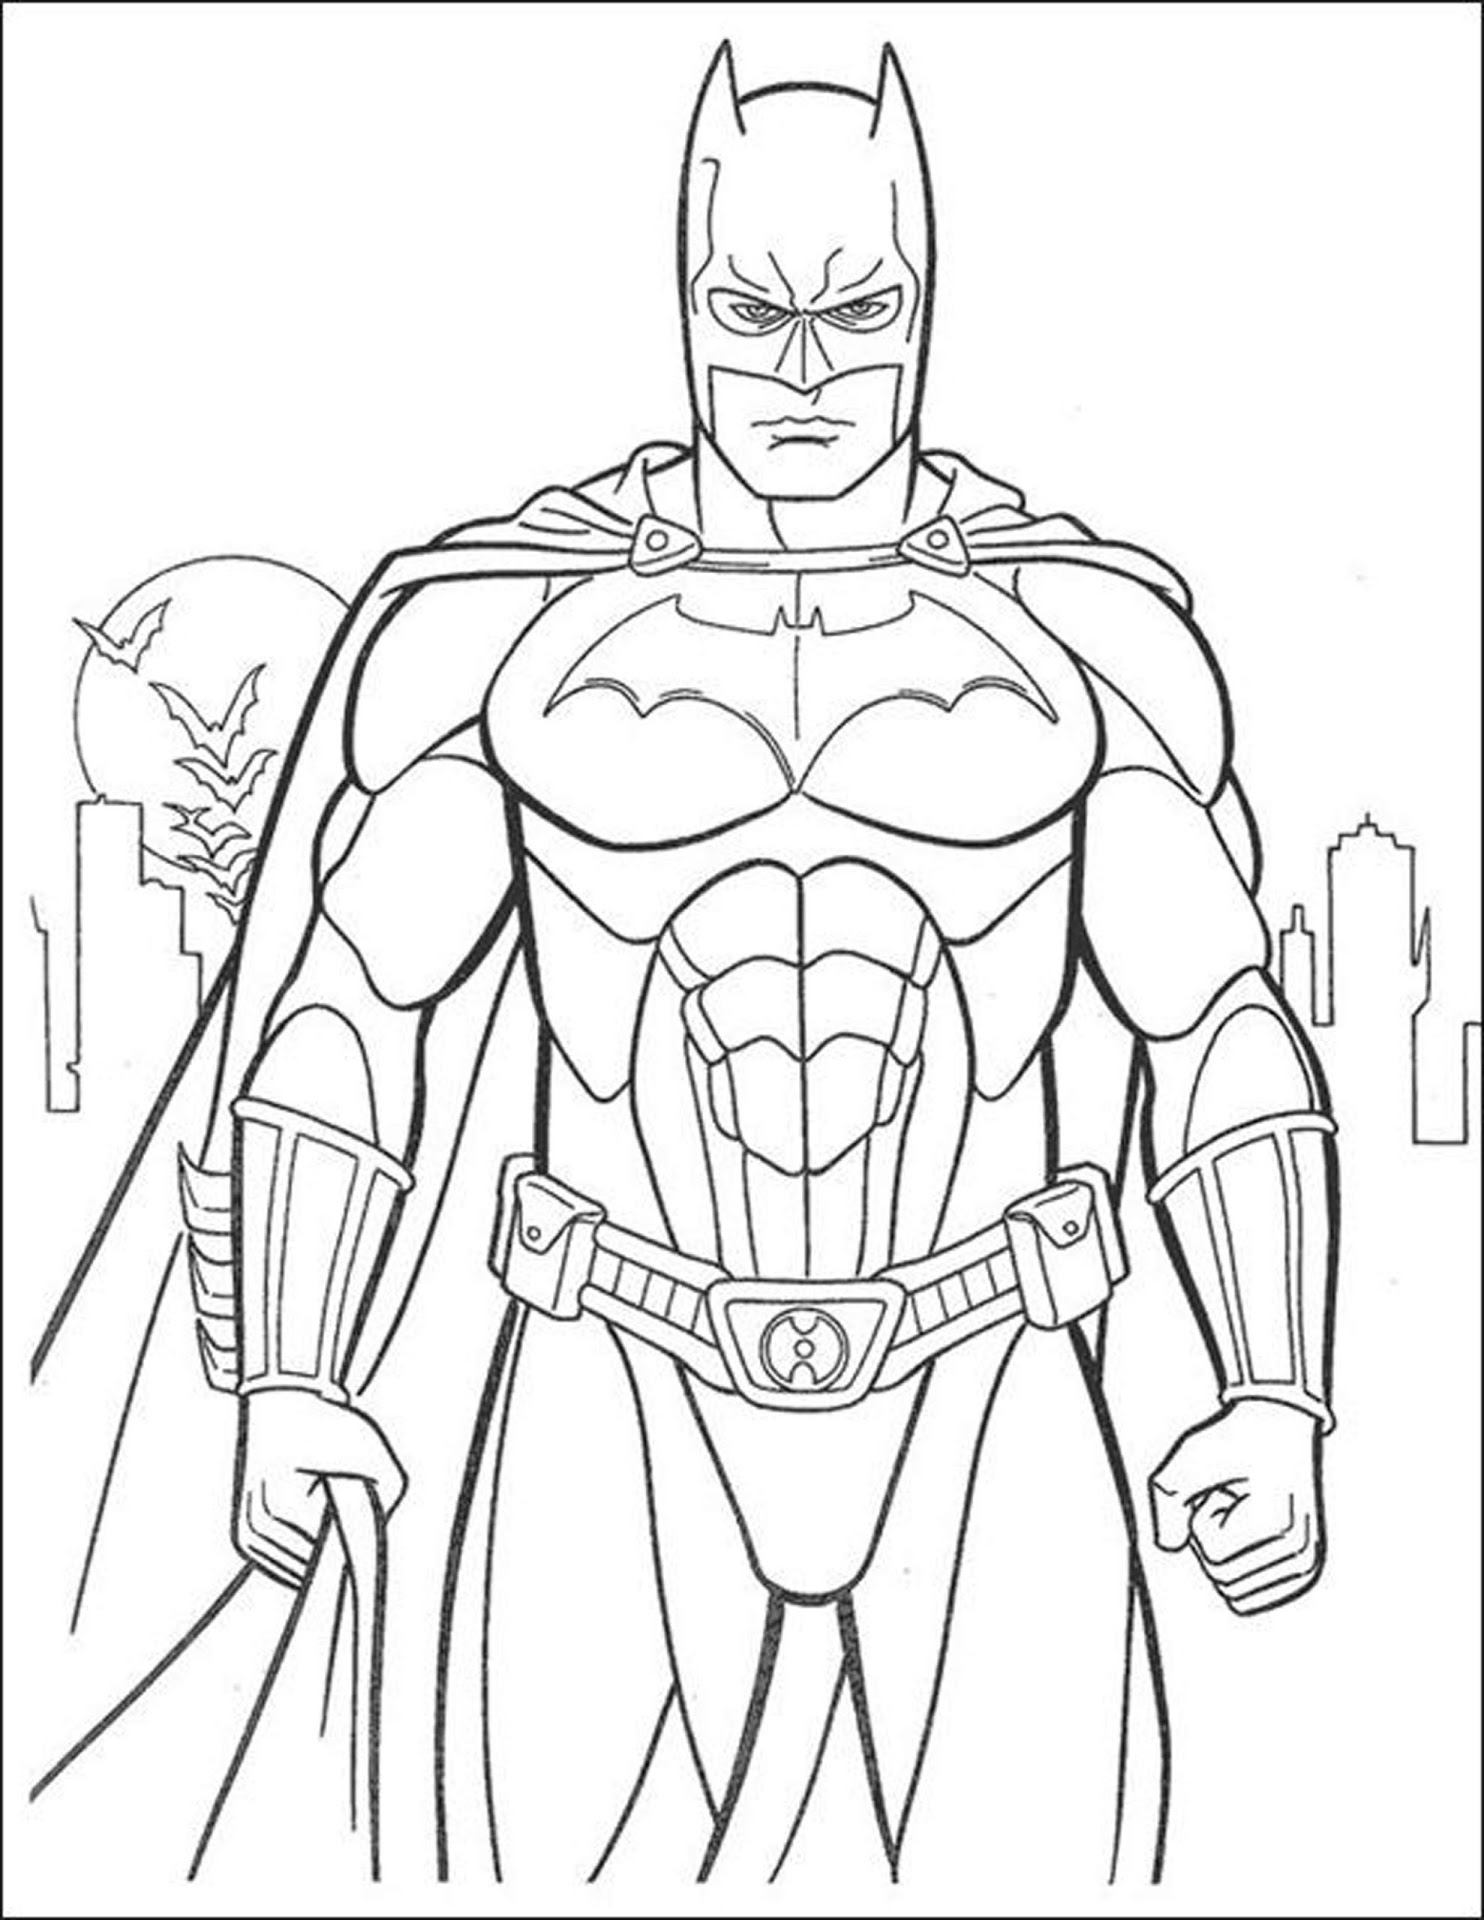 batman coloring pages free printable free printable batman coloring pages for kids free batman printable pages coloring